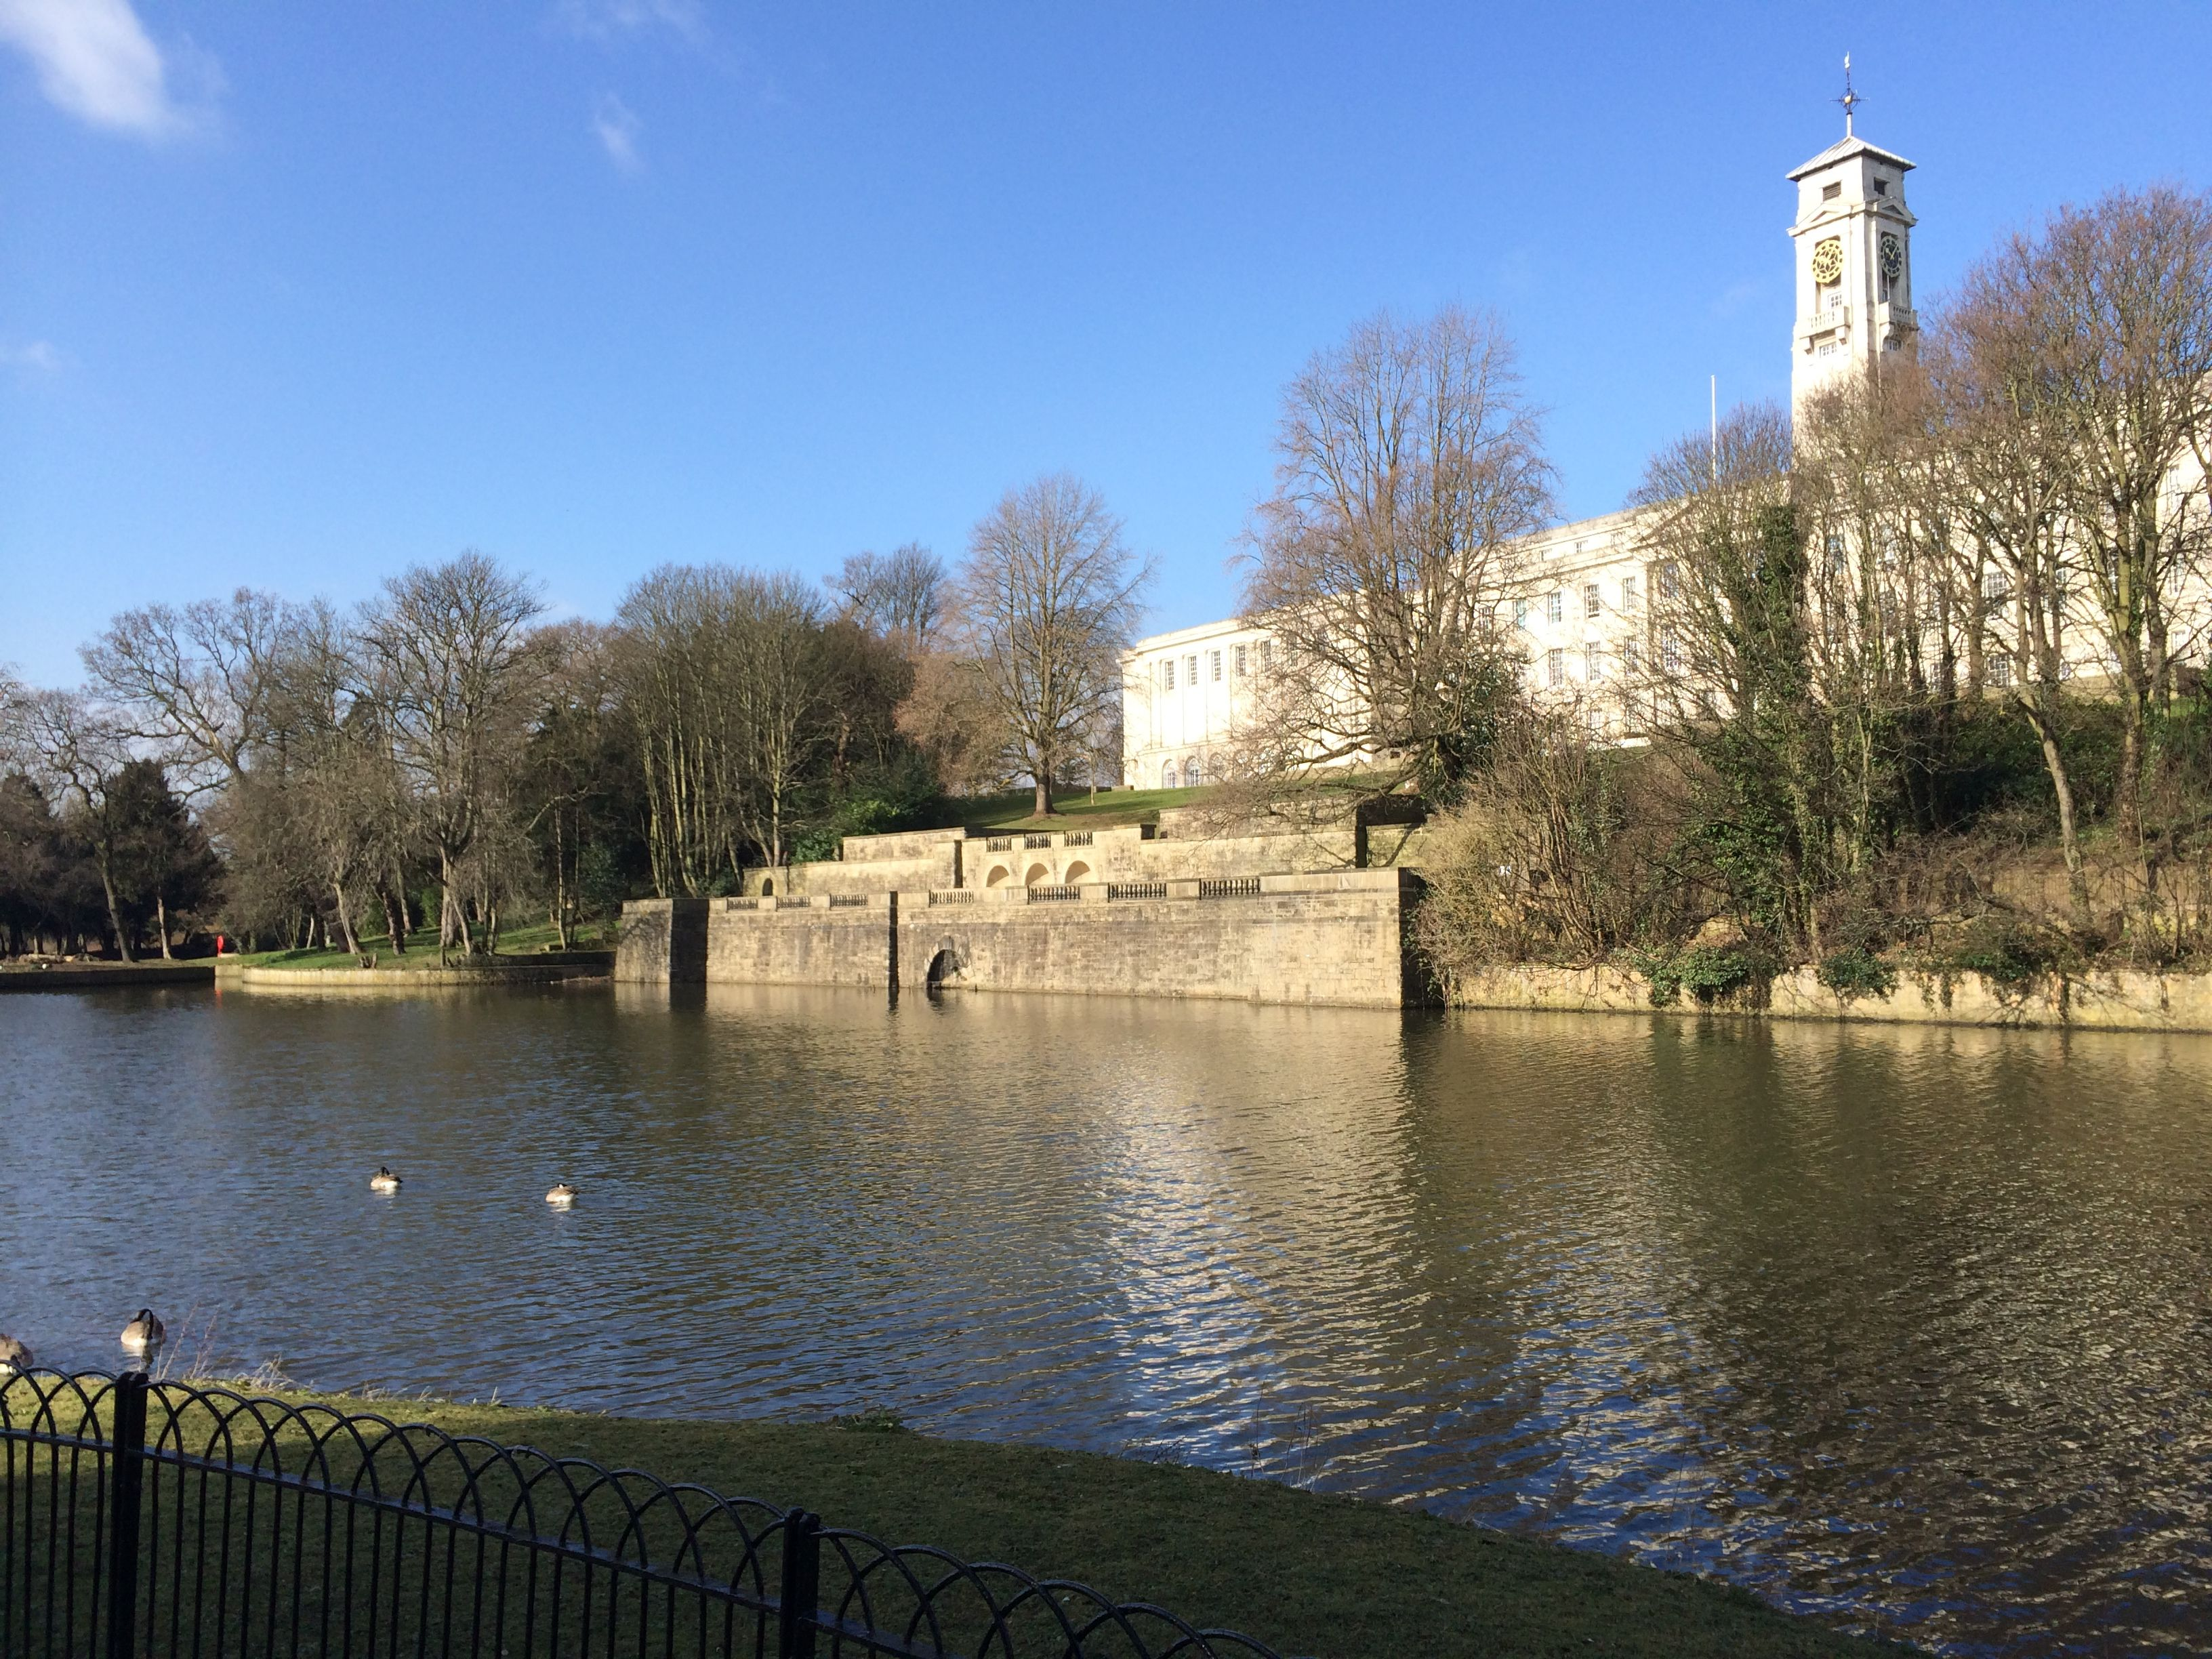 The Universityofnottingham S Iconic Trent Building In Highfields